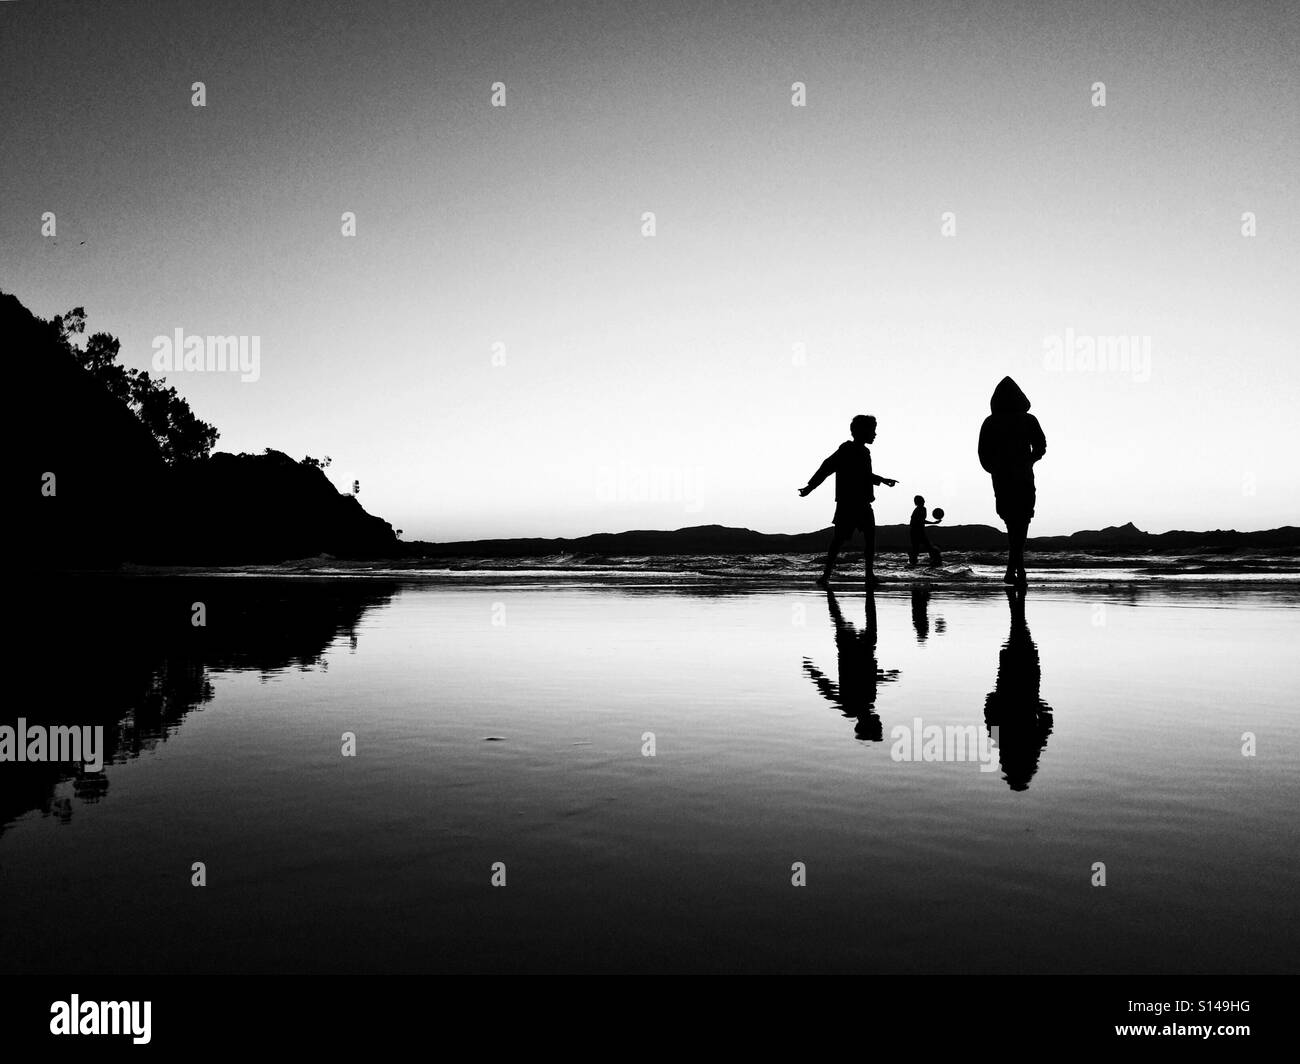 Playing on the Beach - Reflections - Stock Image